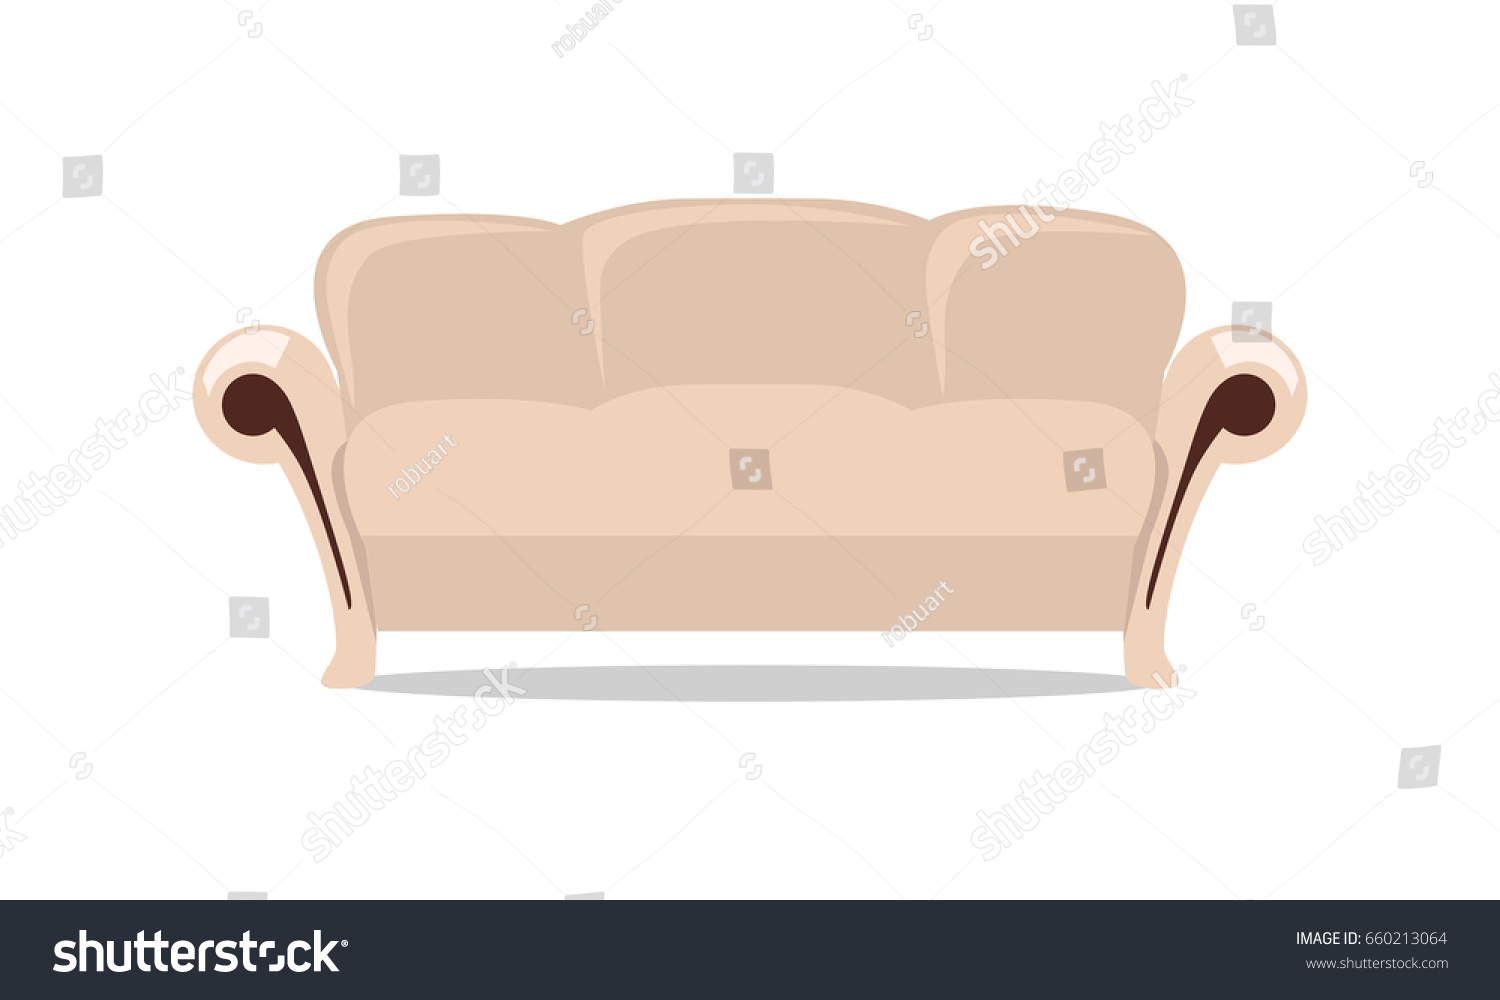 comfortable leather couch 1980 leather sofa in flat style design classic comfortable leather couch illustration for apartment interior design flat style design classic comfortable stock illustration